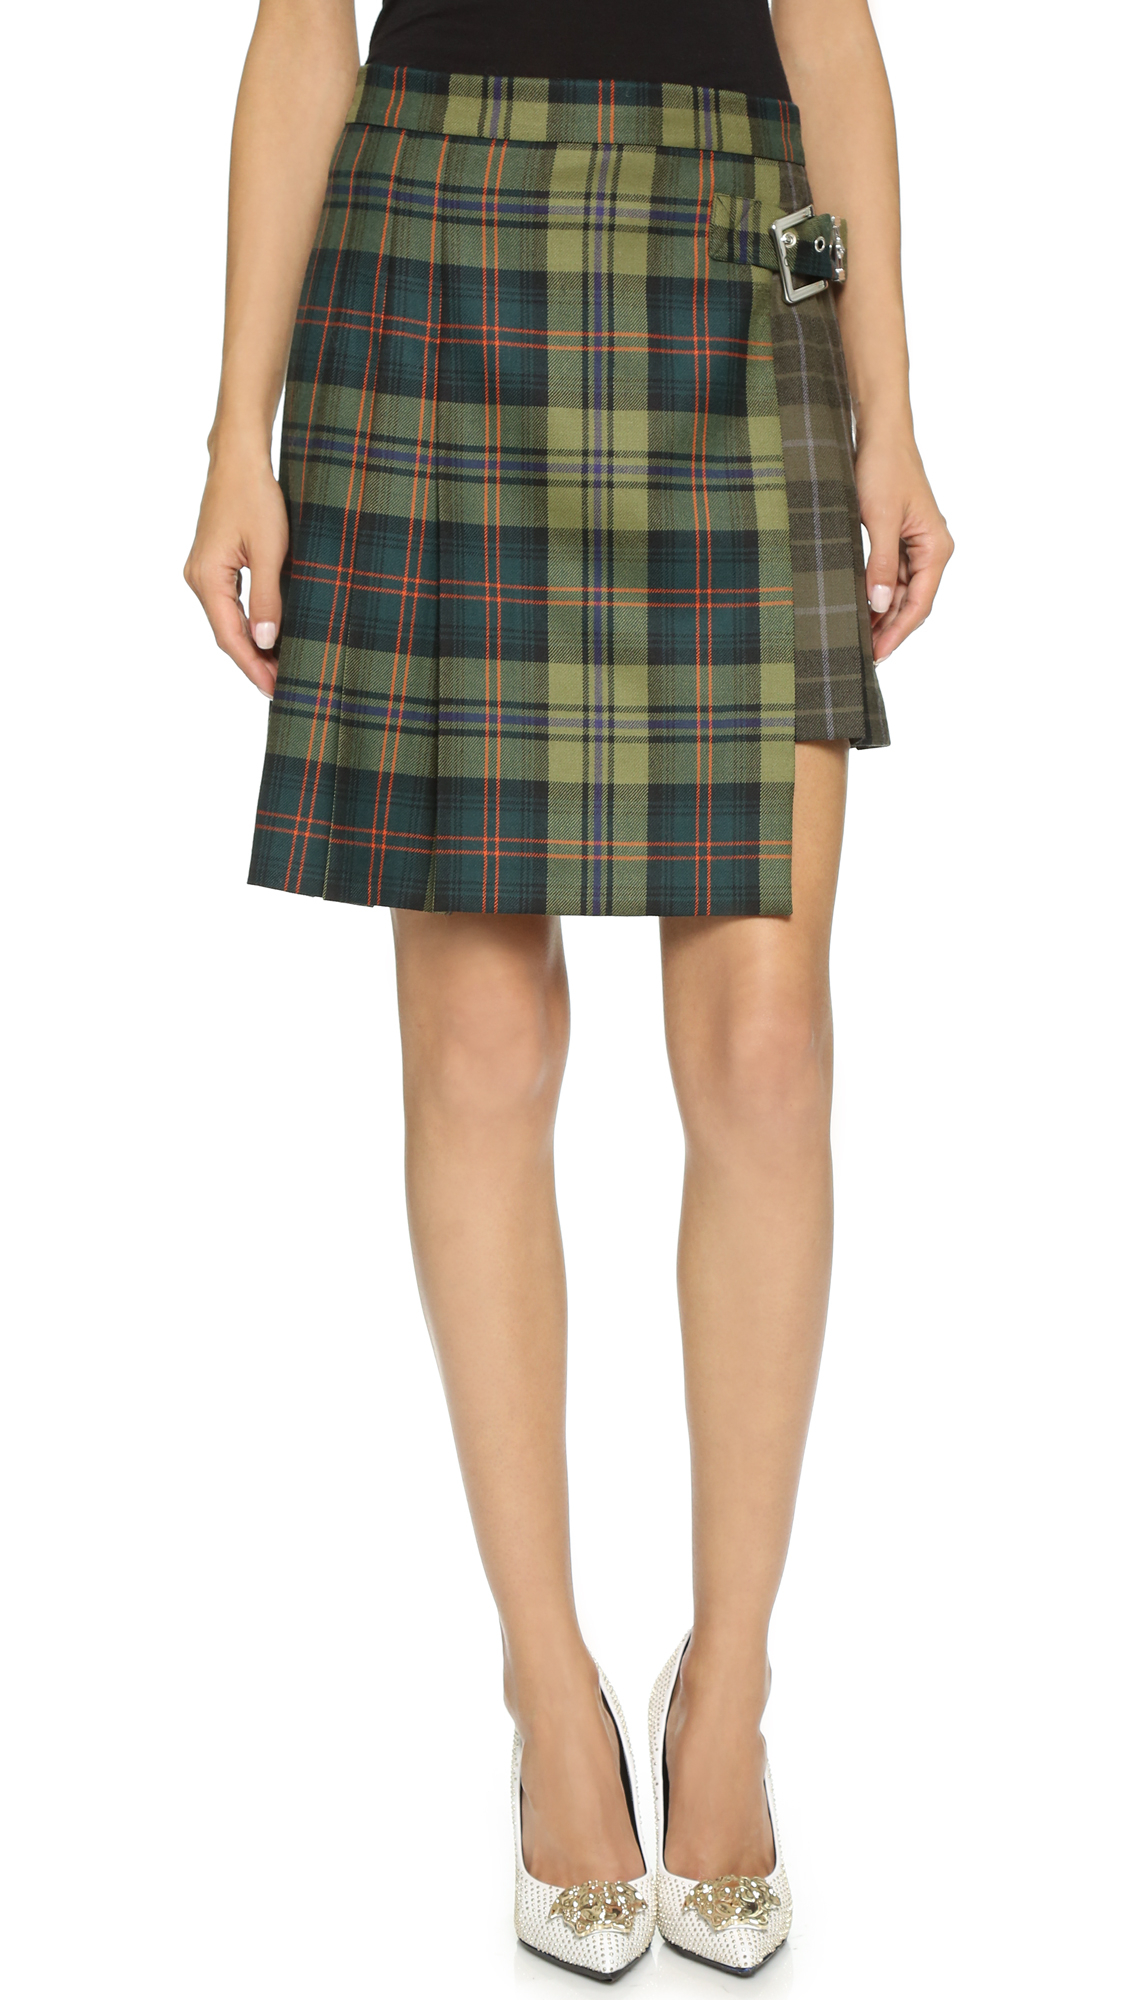 versus plaid kilt skirt khaki in khaki lyst